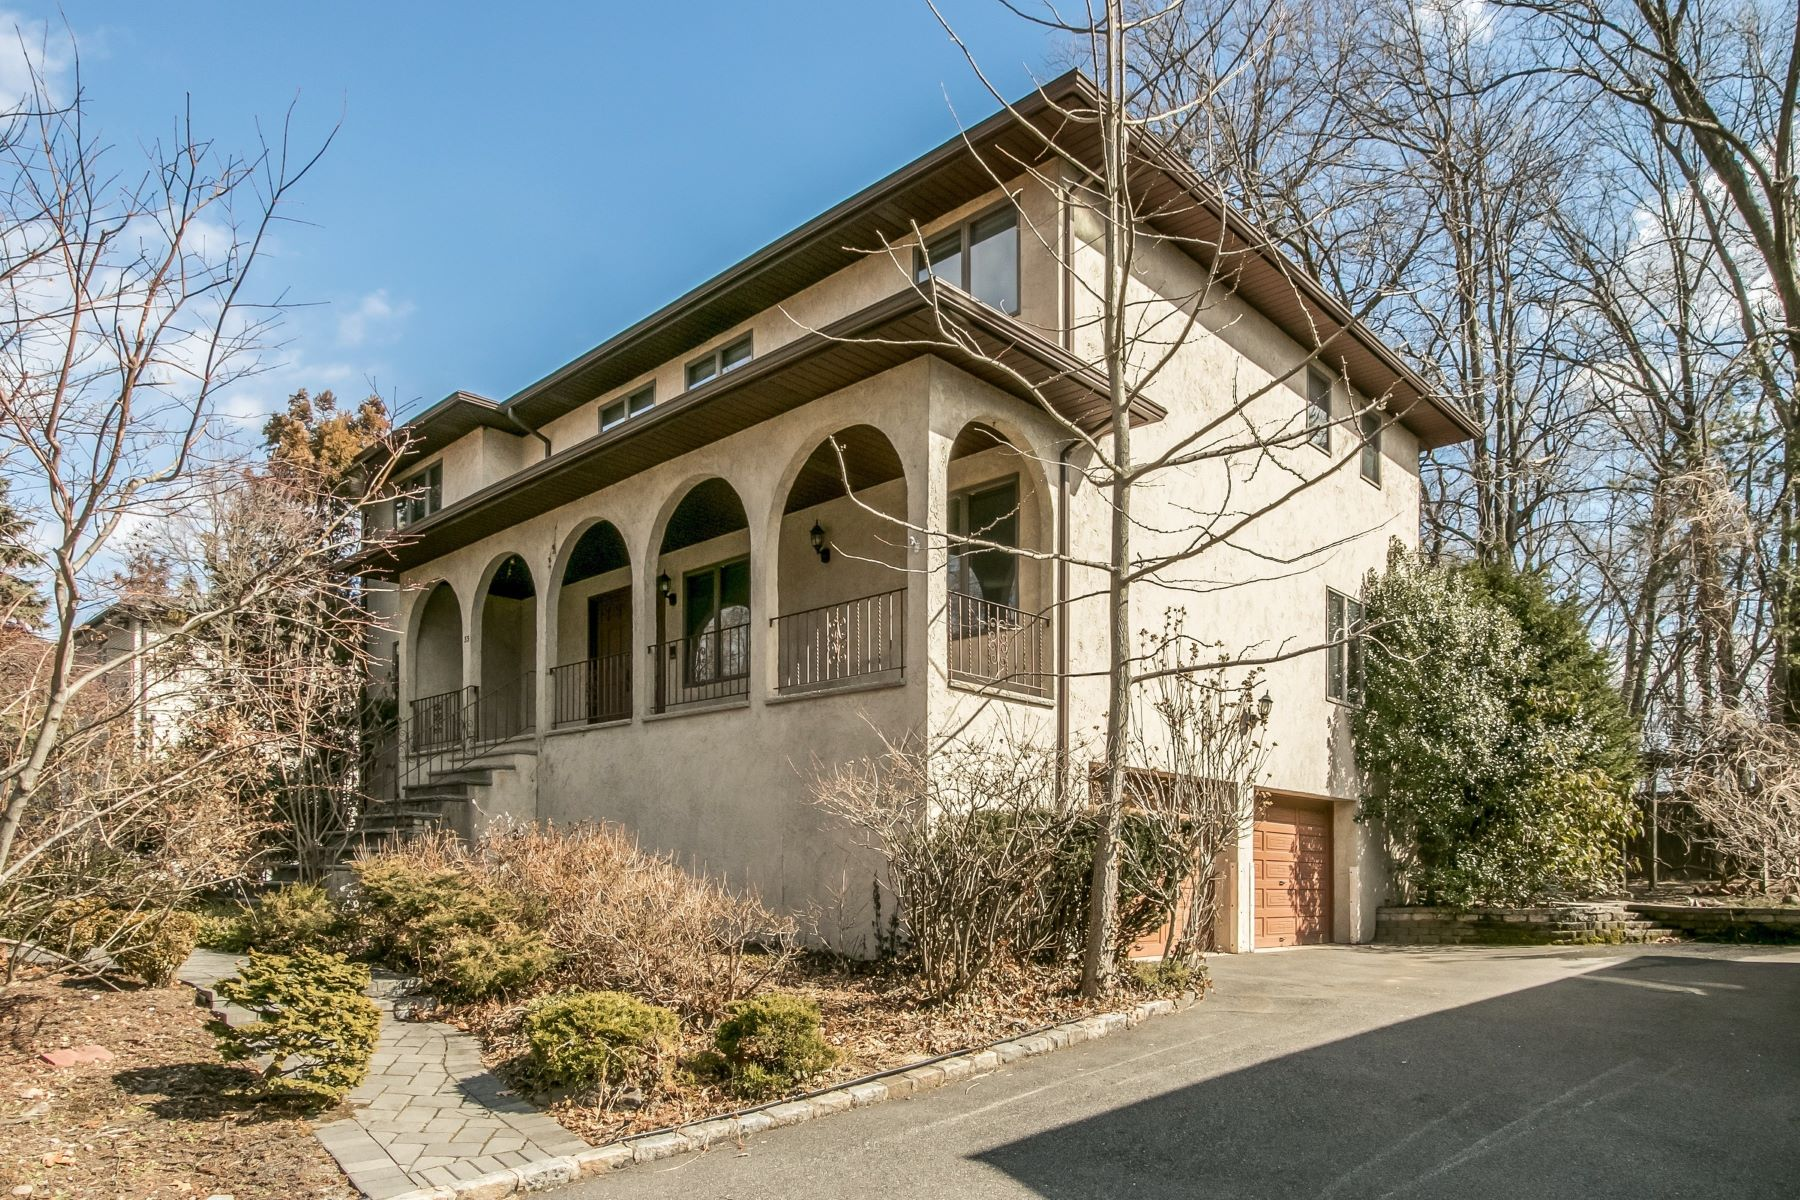 Single Family Home for Sale at Prime Location 33 Summit St, Englewood Cliffs, New Jersey 07632 United States